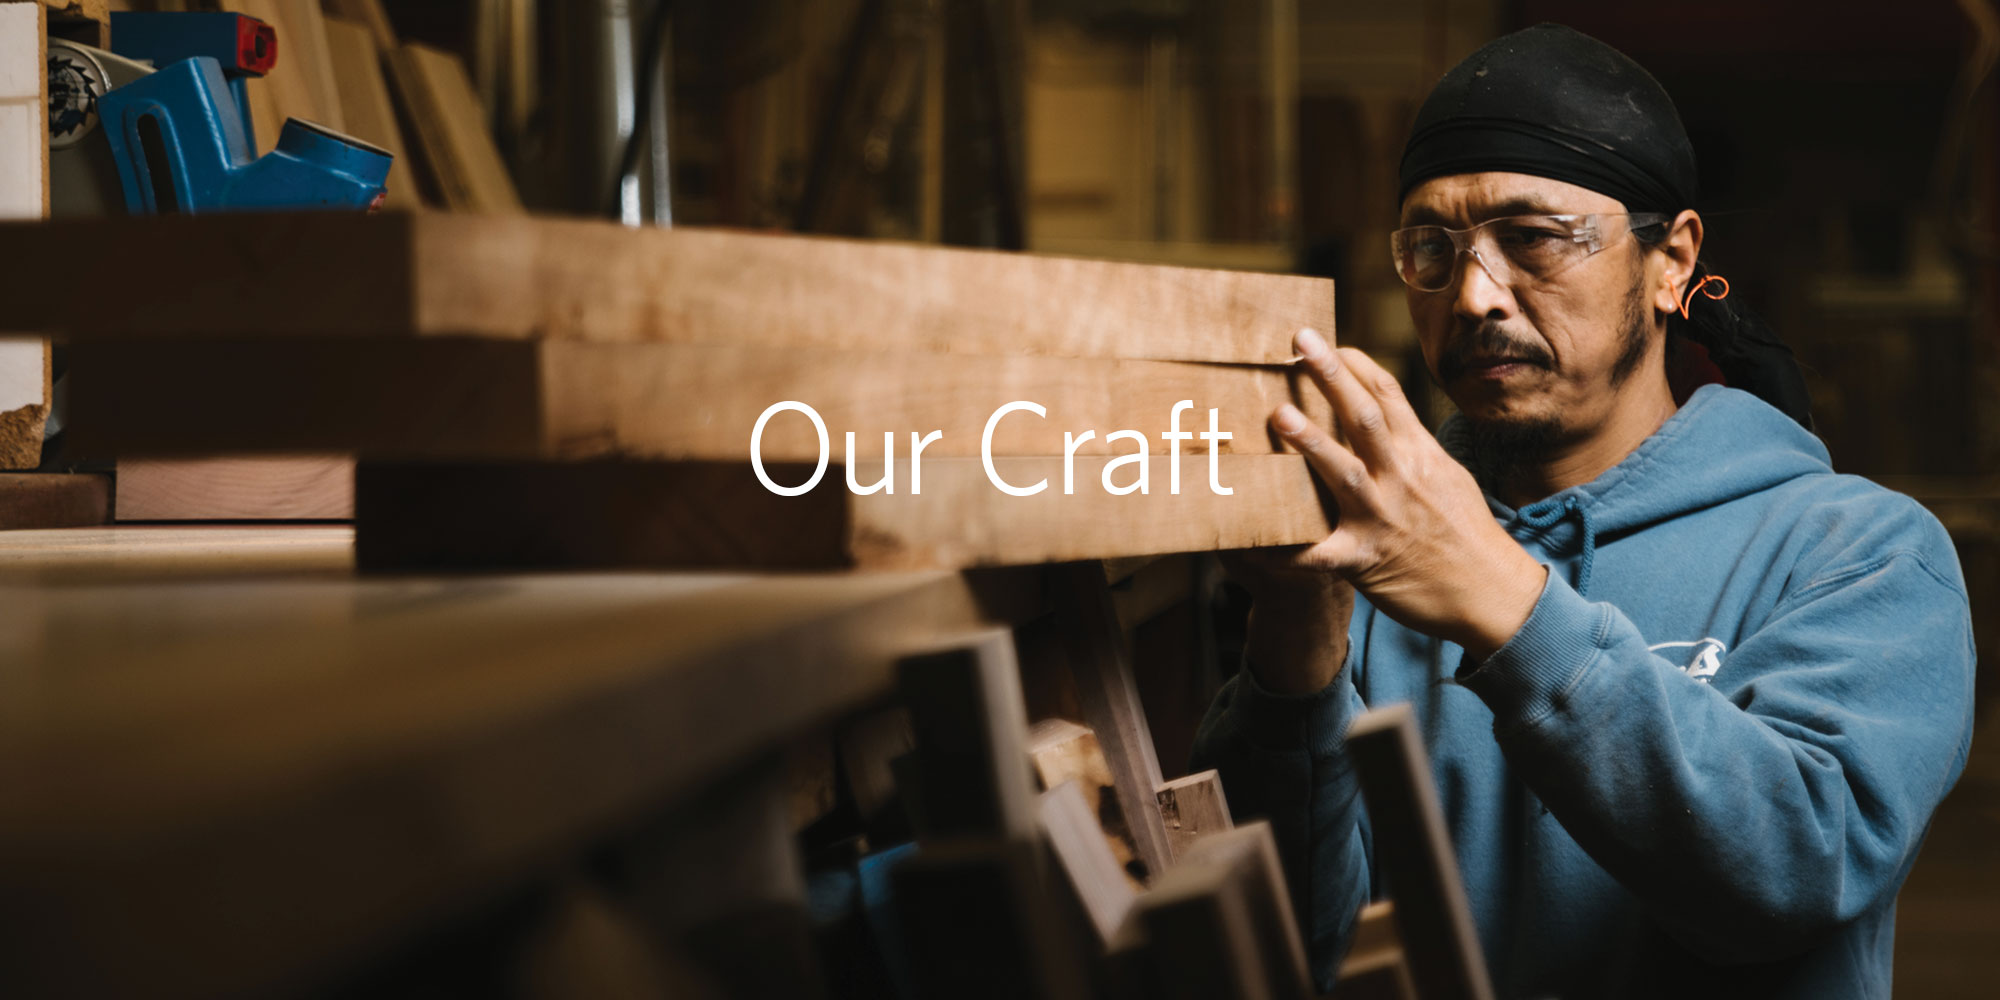 Banner image: Our Craft